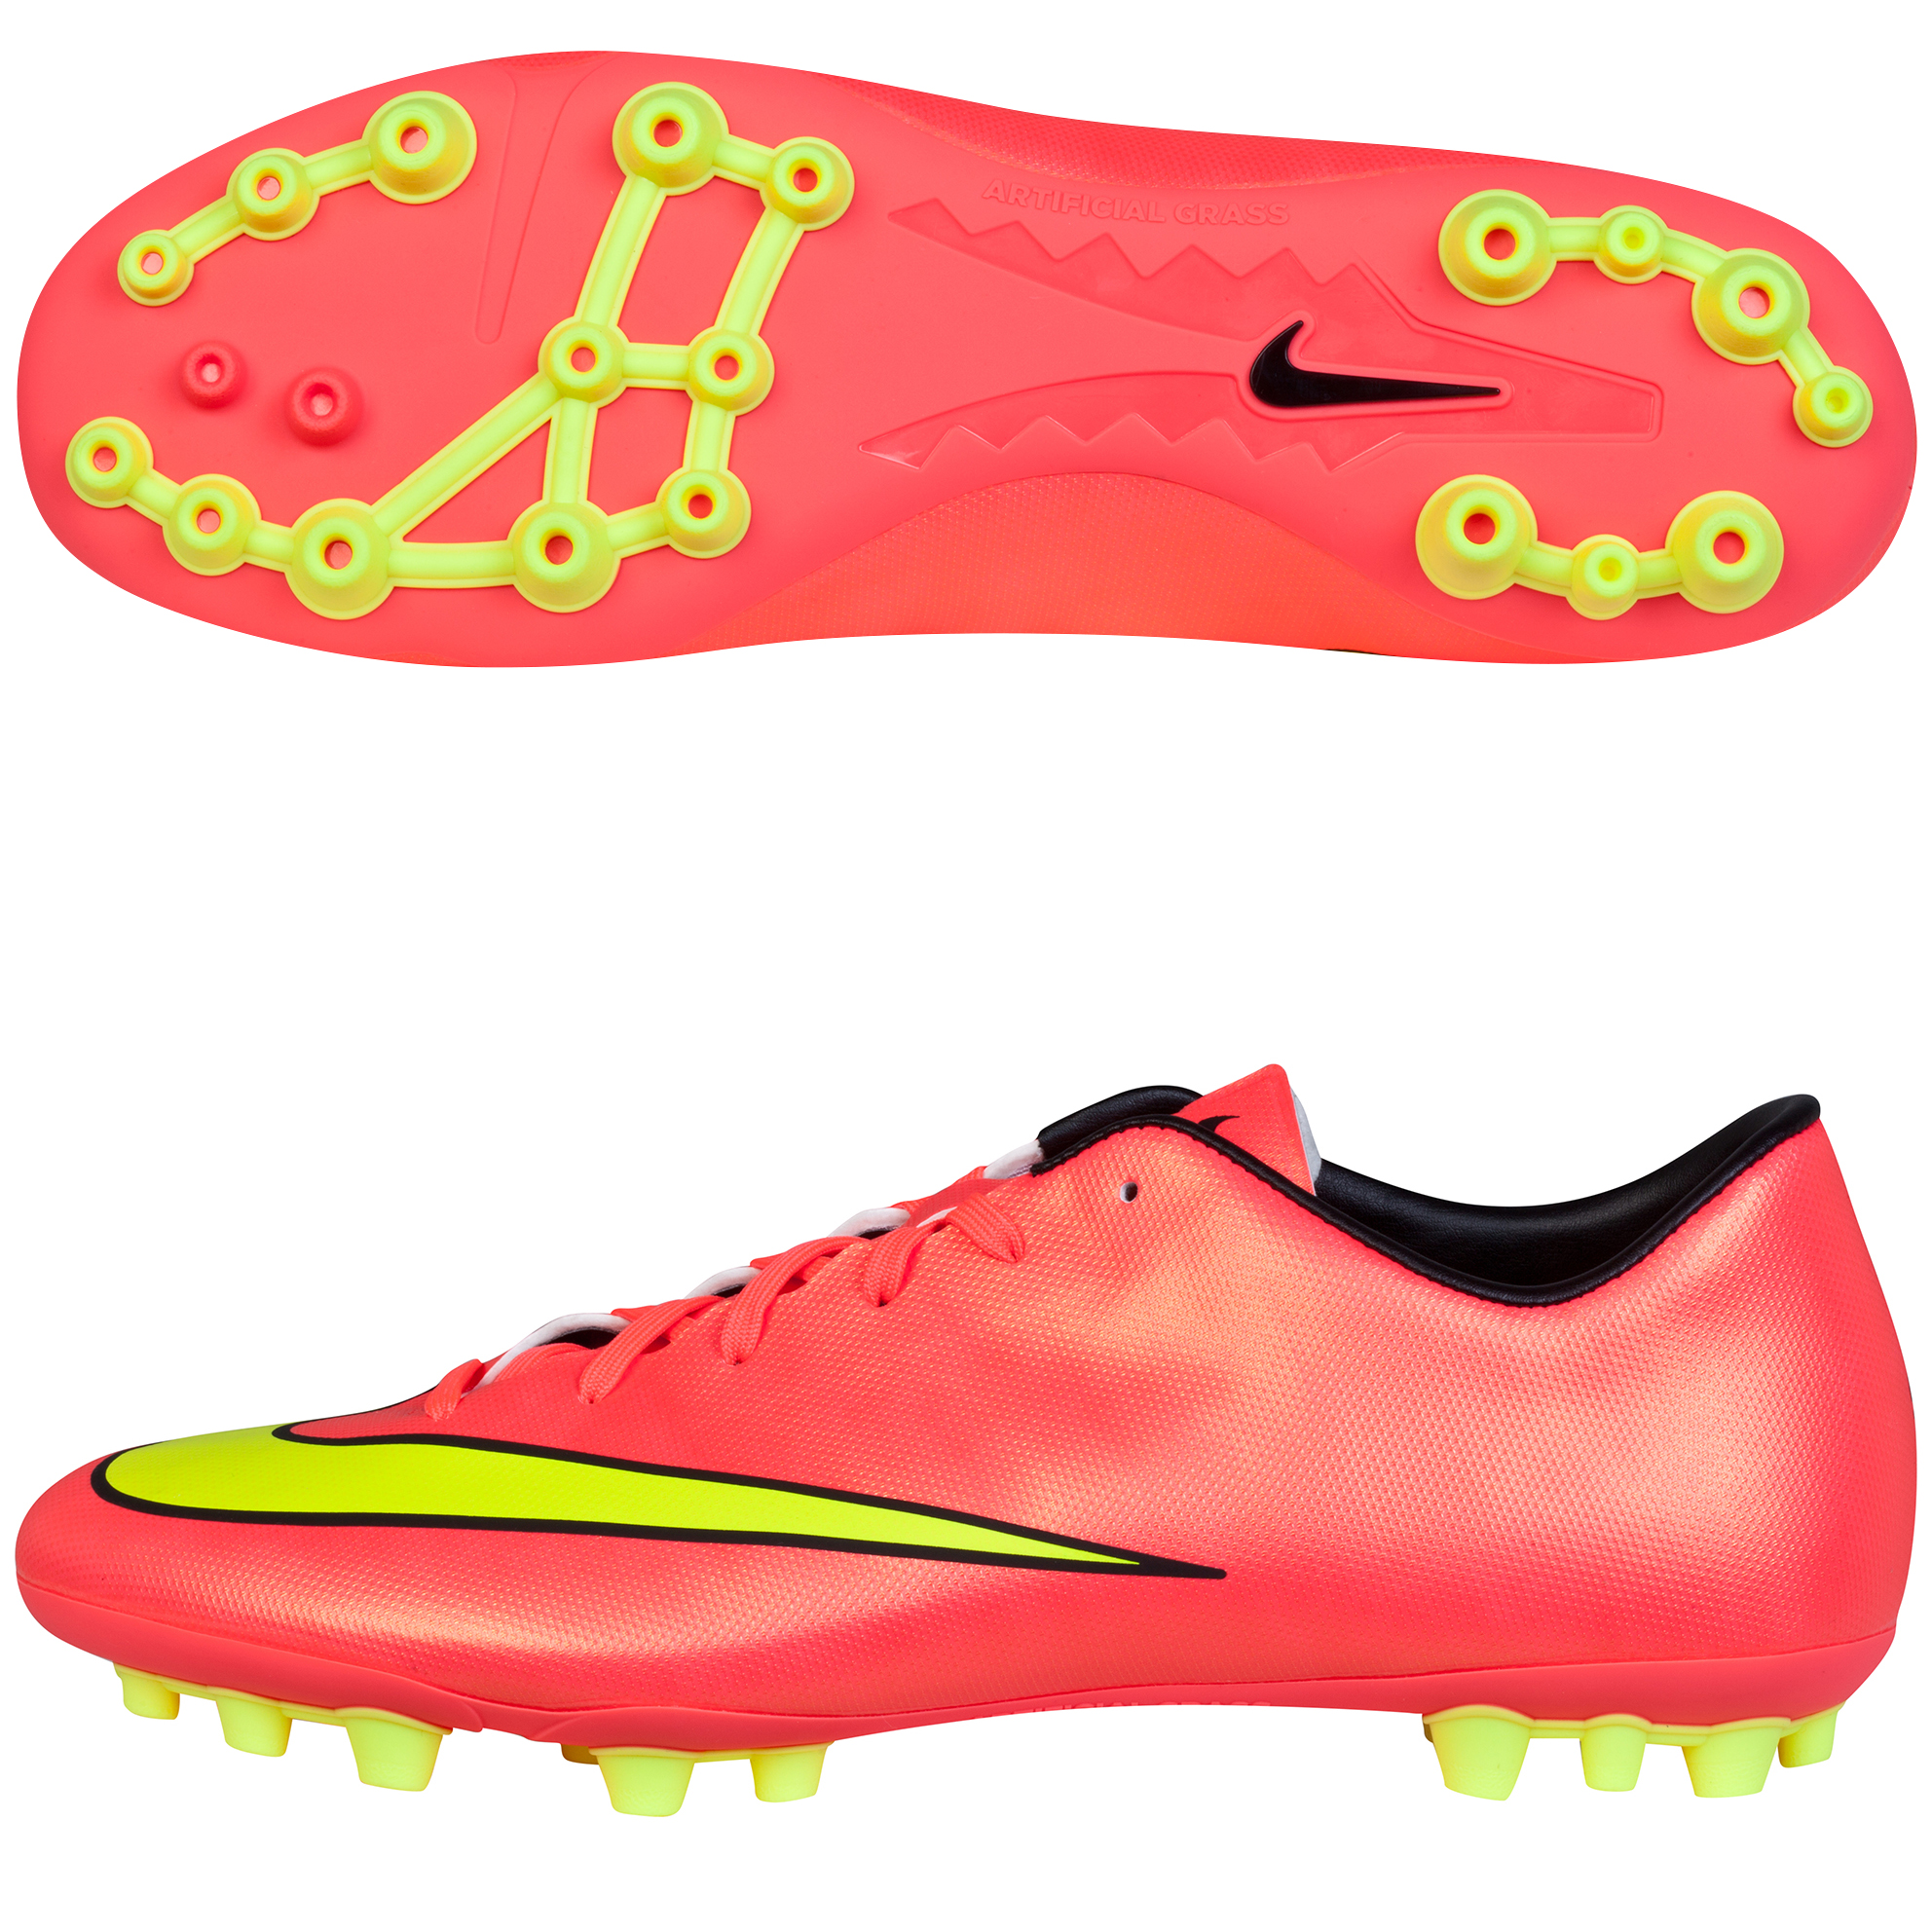 Nike Mercurial Victory V Artificial Grass Football Boots Pink